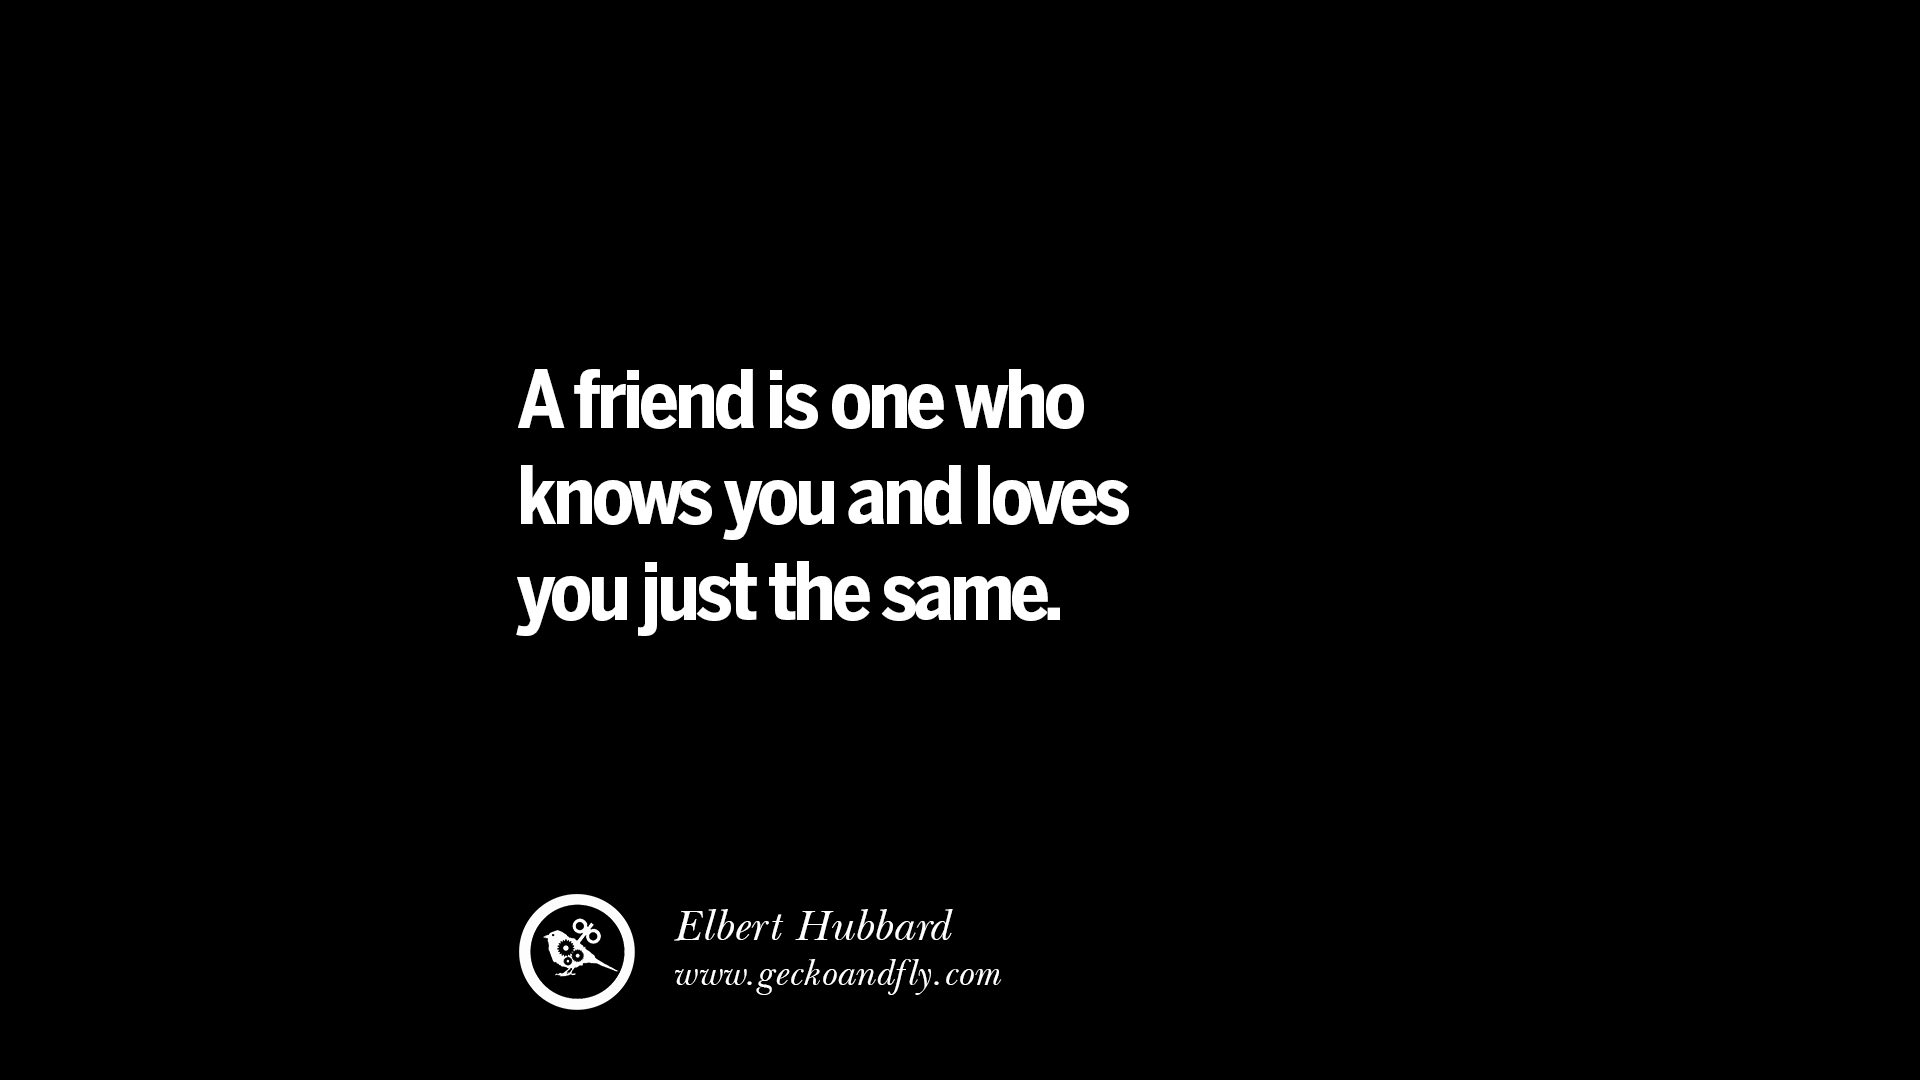 Inspirational Quotes About Friendship 20 Amazing Quotes About Friendship Love And Friends  Geckoandfly 2018